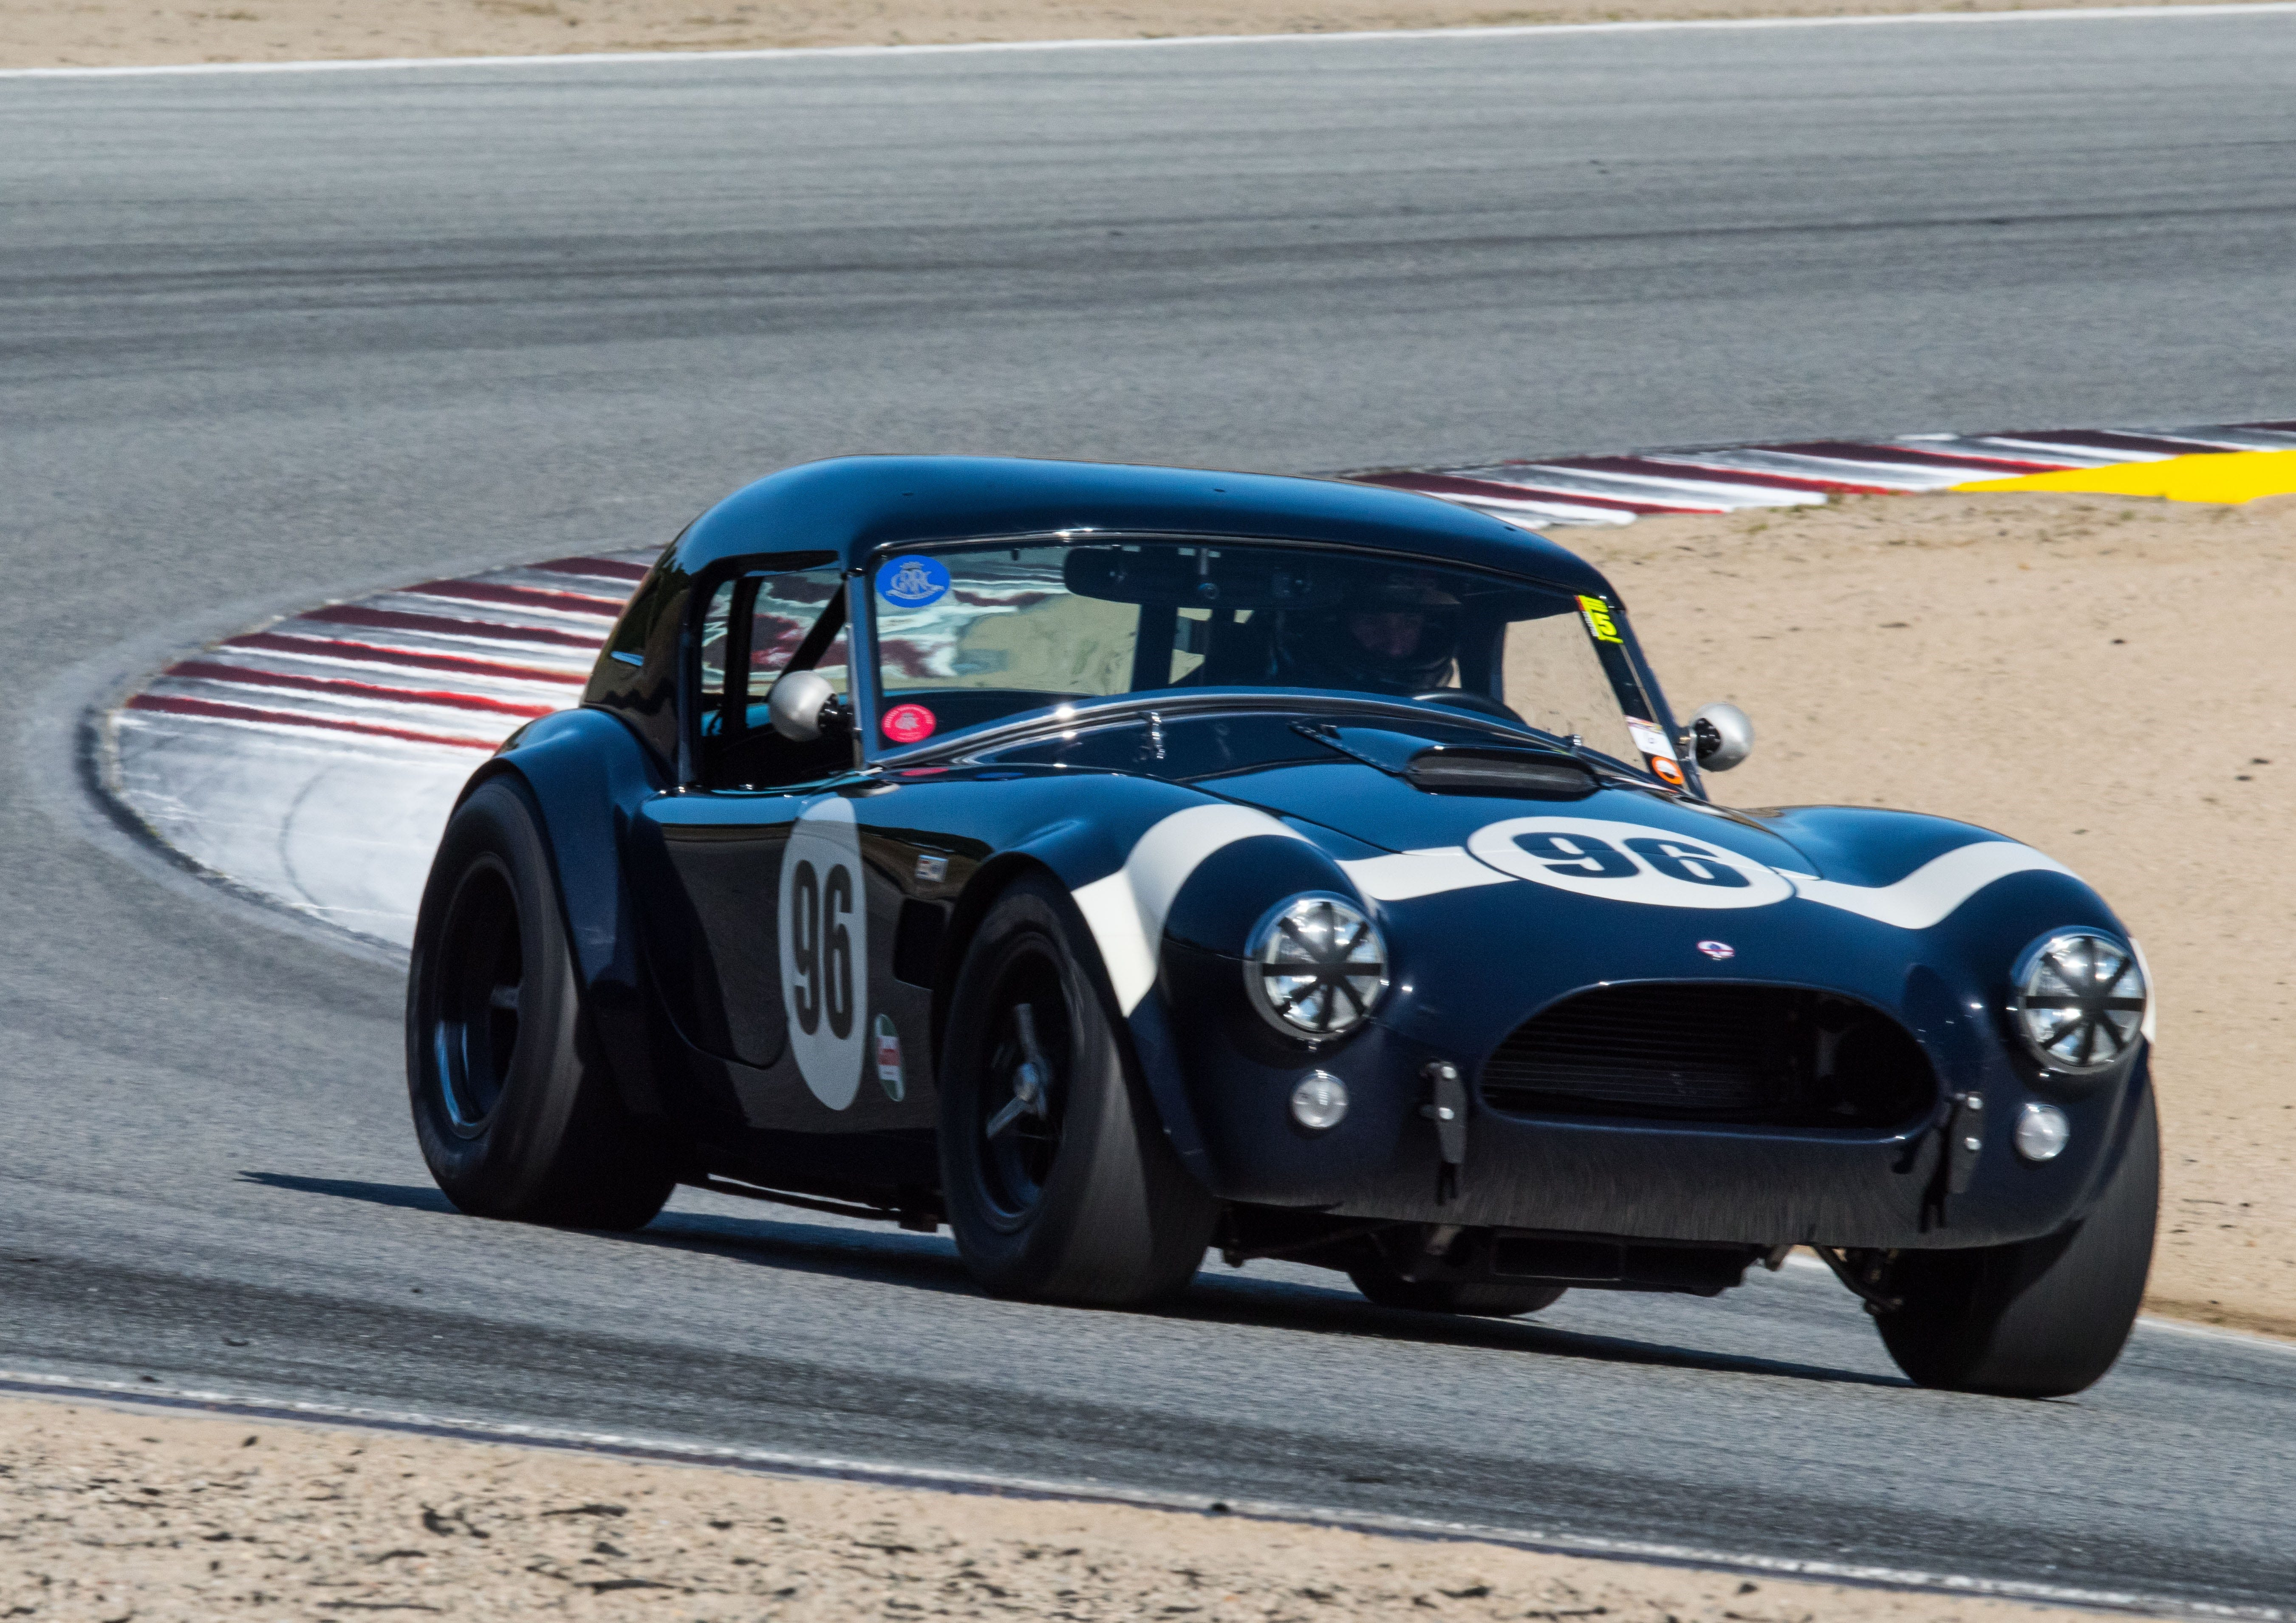 Ford CEO Jim Farley raced in the Sportscar Vintage Racing Association series at the WeatherTech Raceway Laguna Seca in Salinas, California on Saturday, May 1, 2021. He won his class and placed second overall.